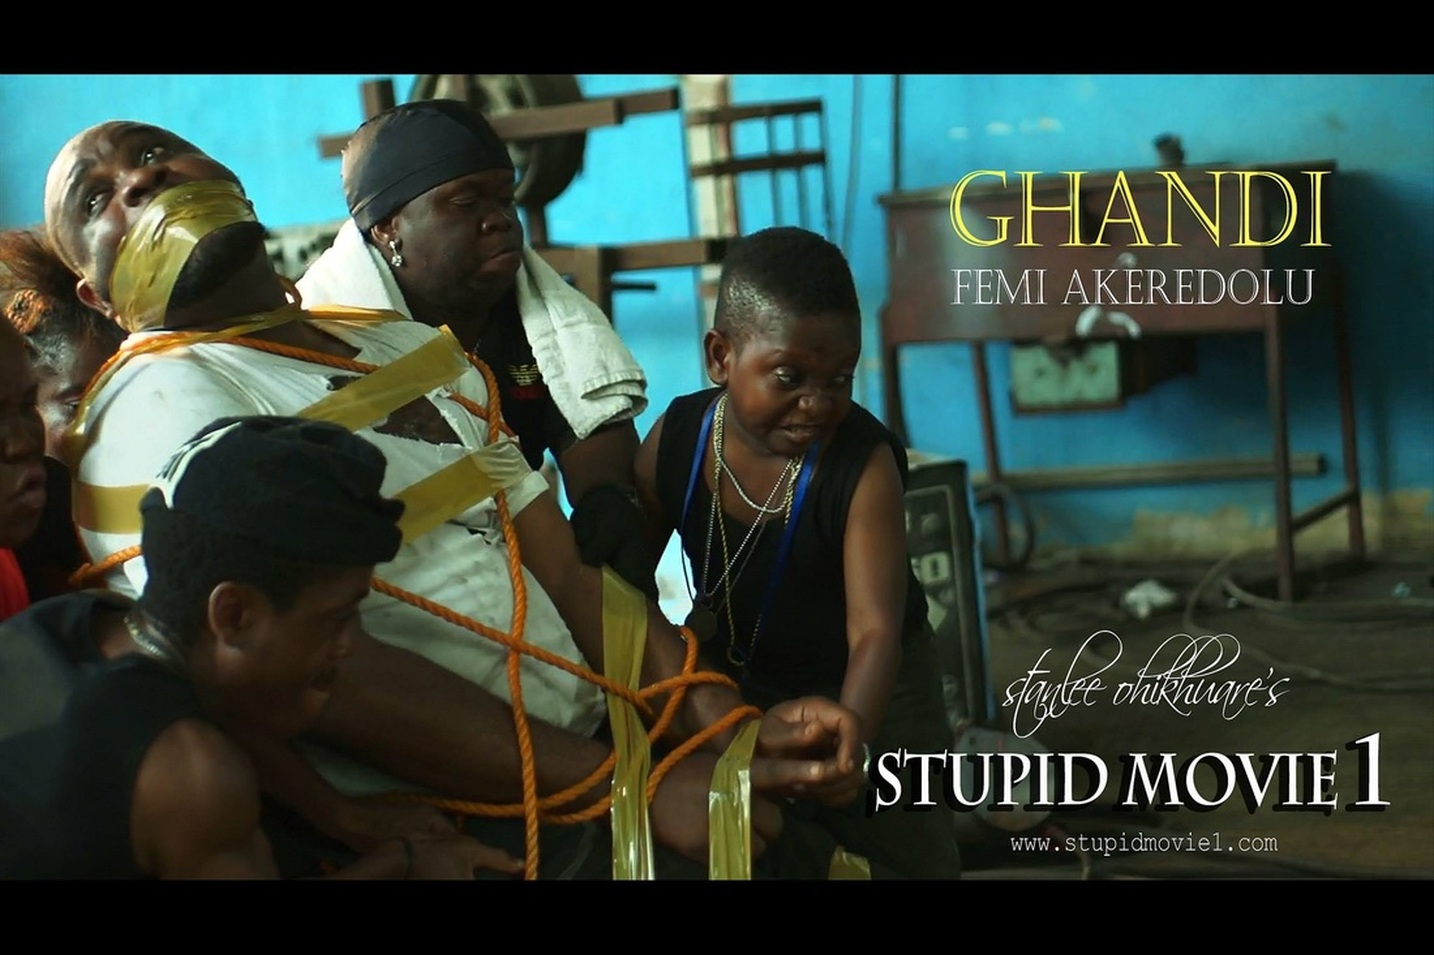 (STUPID MOVIE CAST)  FEMI AKEREDOLU AS GHANDI